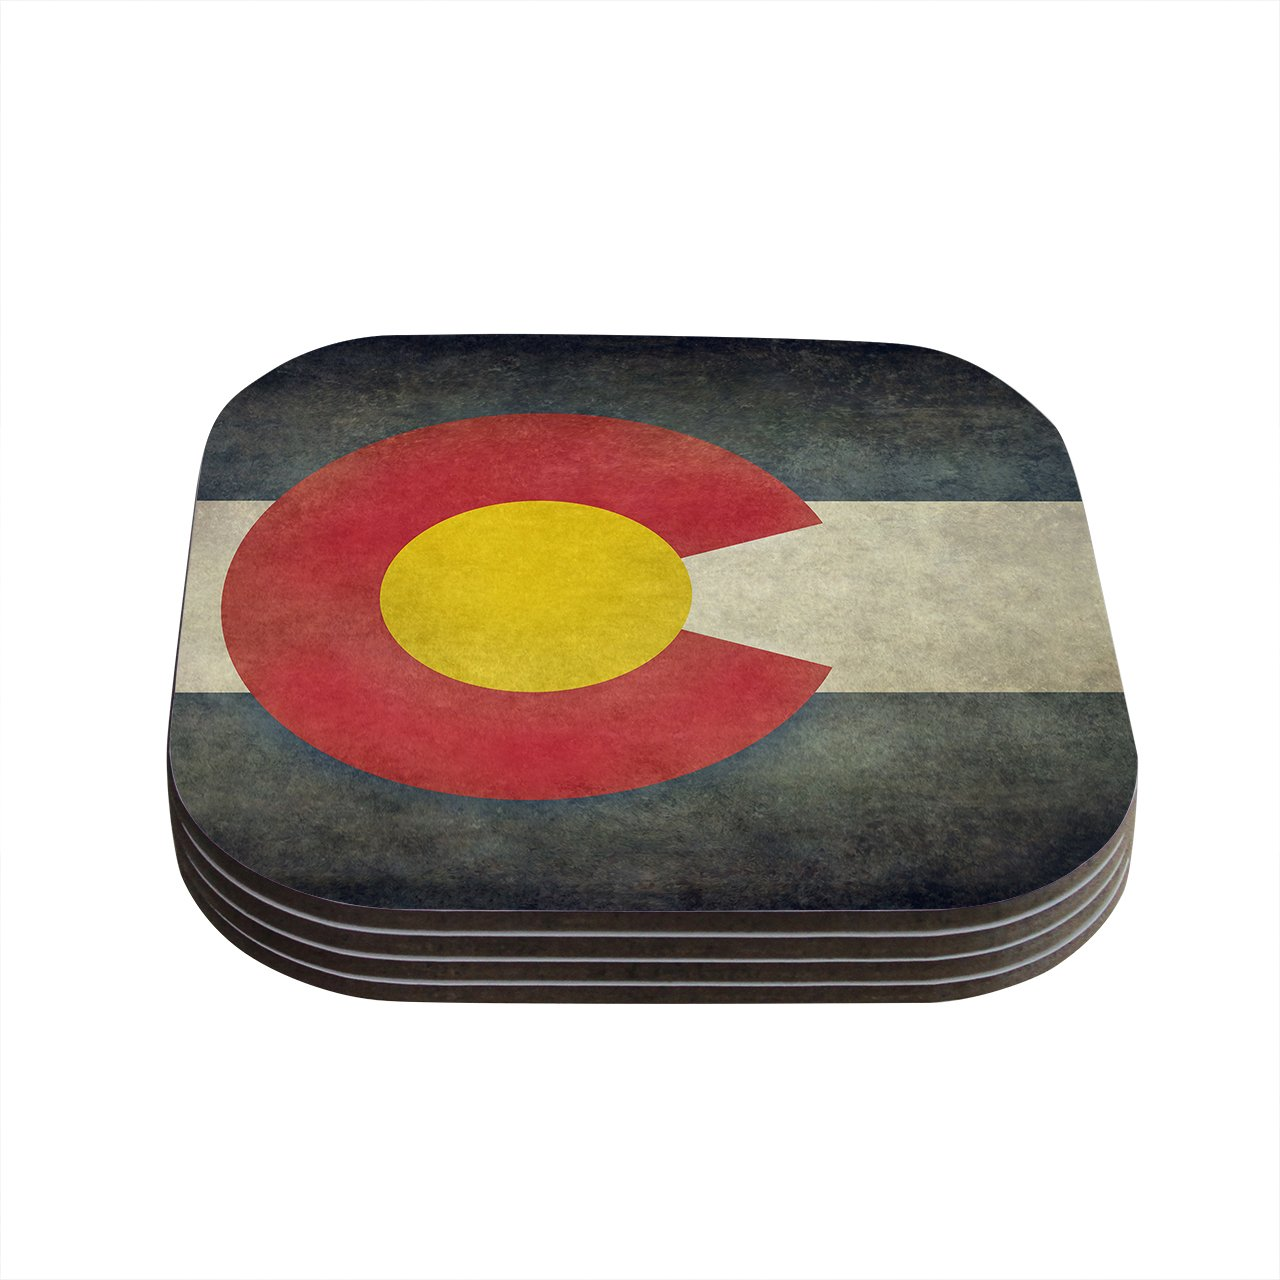 Kess InHouse Bruce Stanfield State Flag of Colorado Black Red Coasters, 4 by 4-Inch, Red/Blue, Set of 4 by Kess InHouse   B00QKHIJ64